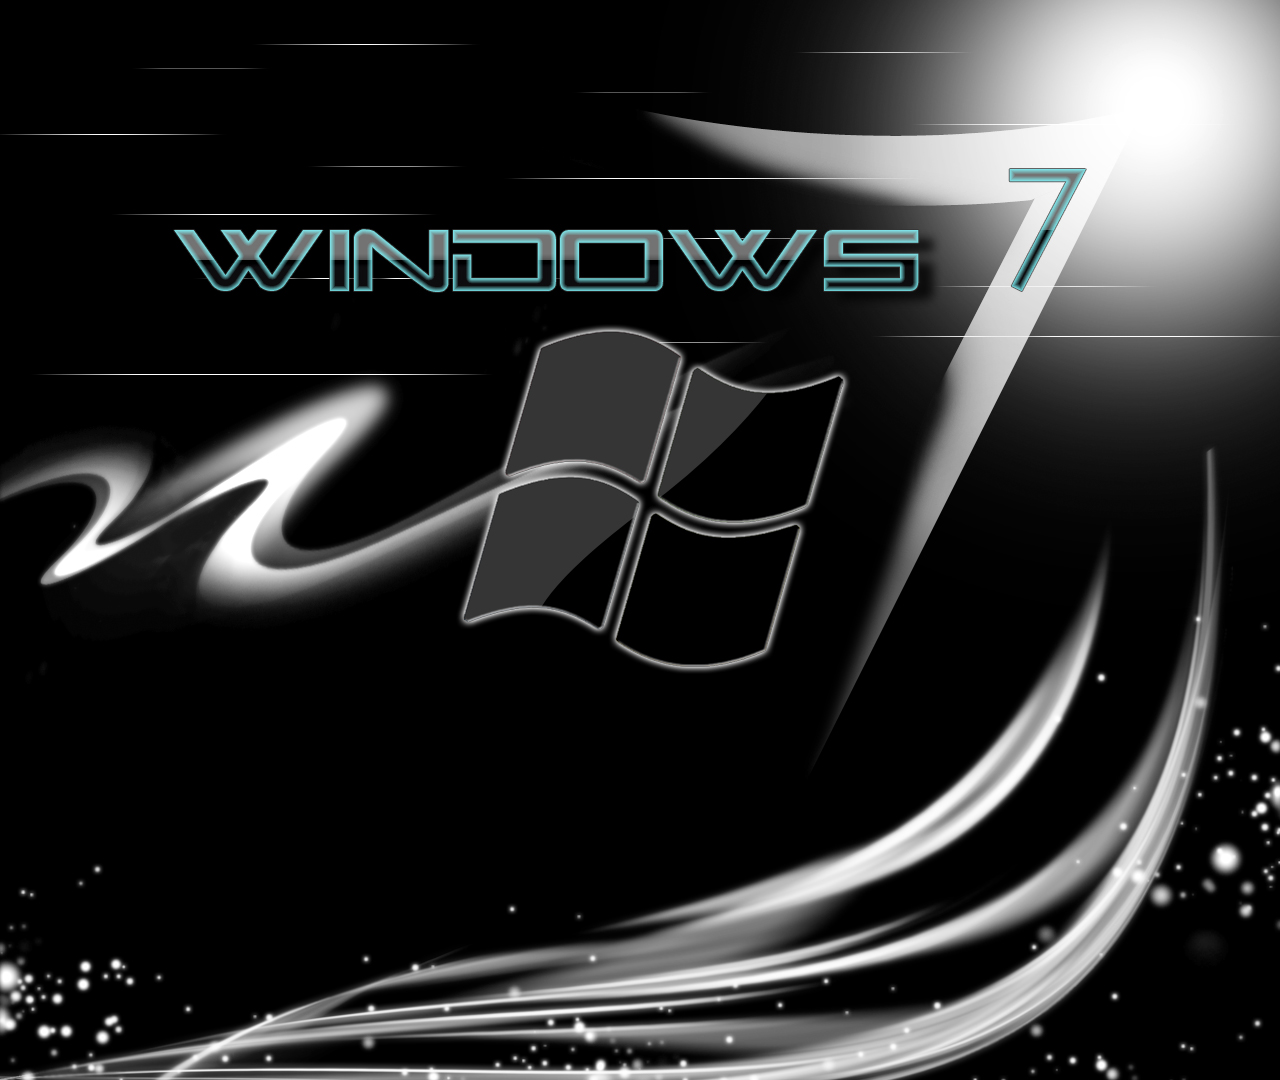 black wallpaper windows 7, black wallpaper windows 7 fix, black wallpaper windows 7 ultimate, hd black wallpaper windows 7, download black wallpaper windows 7,